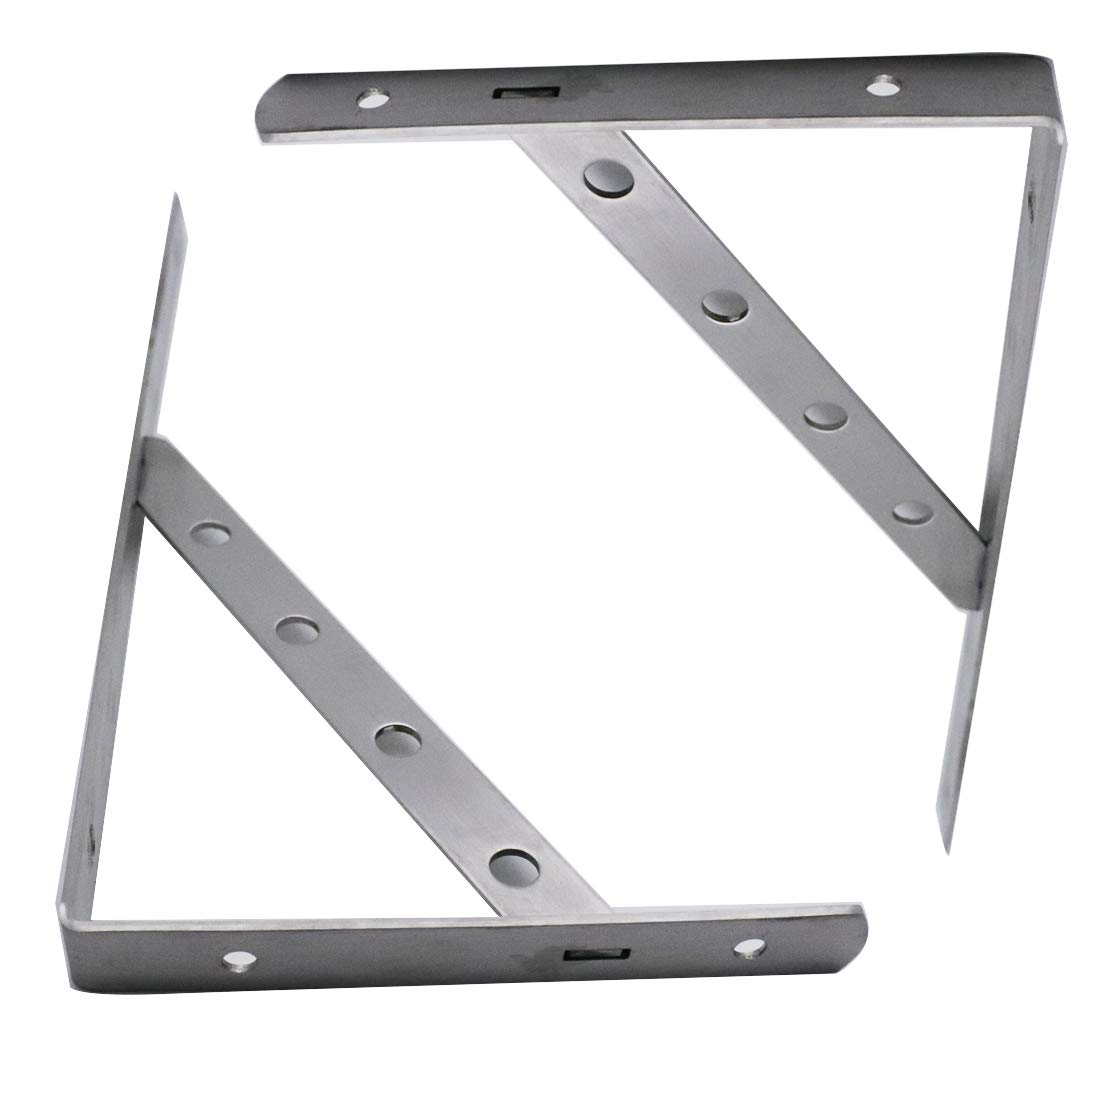 ZXHAO 12 inch Stainless Steel Triangle Shelf Bracket Support Wall Hanging Detachable Bracket 2pcs